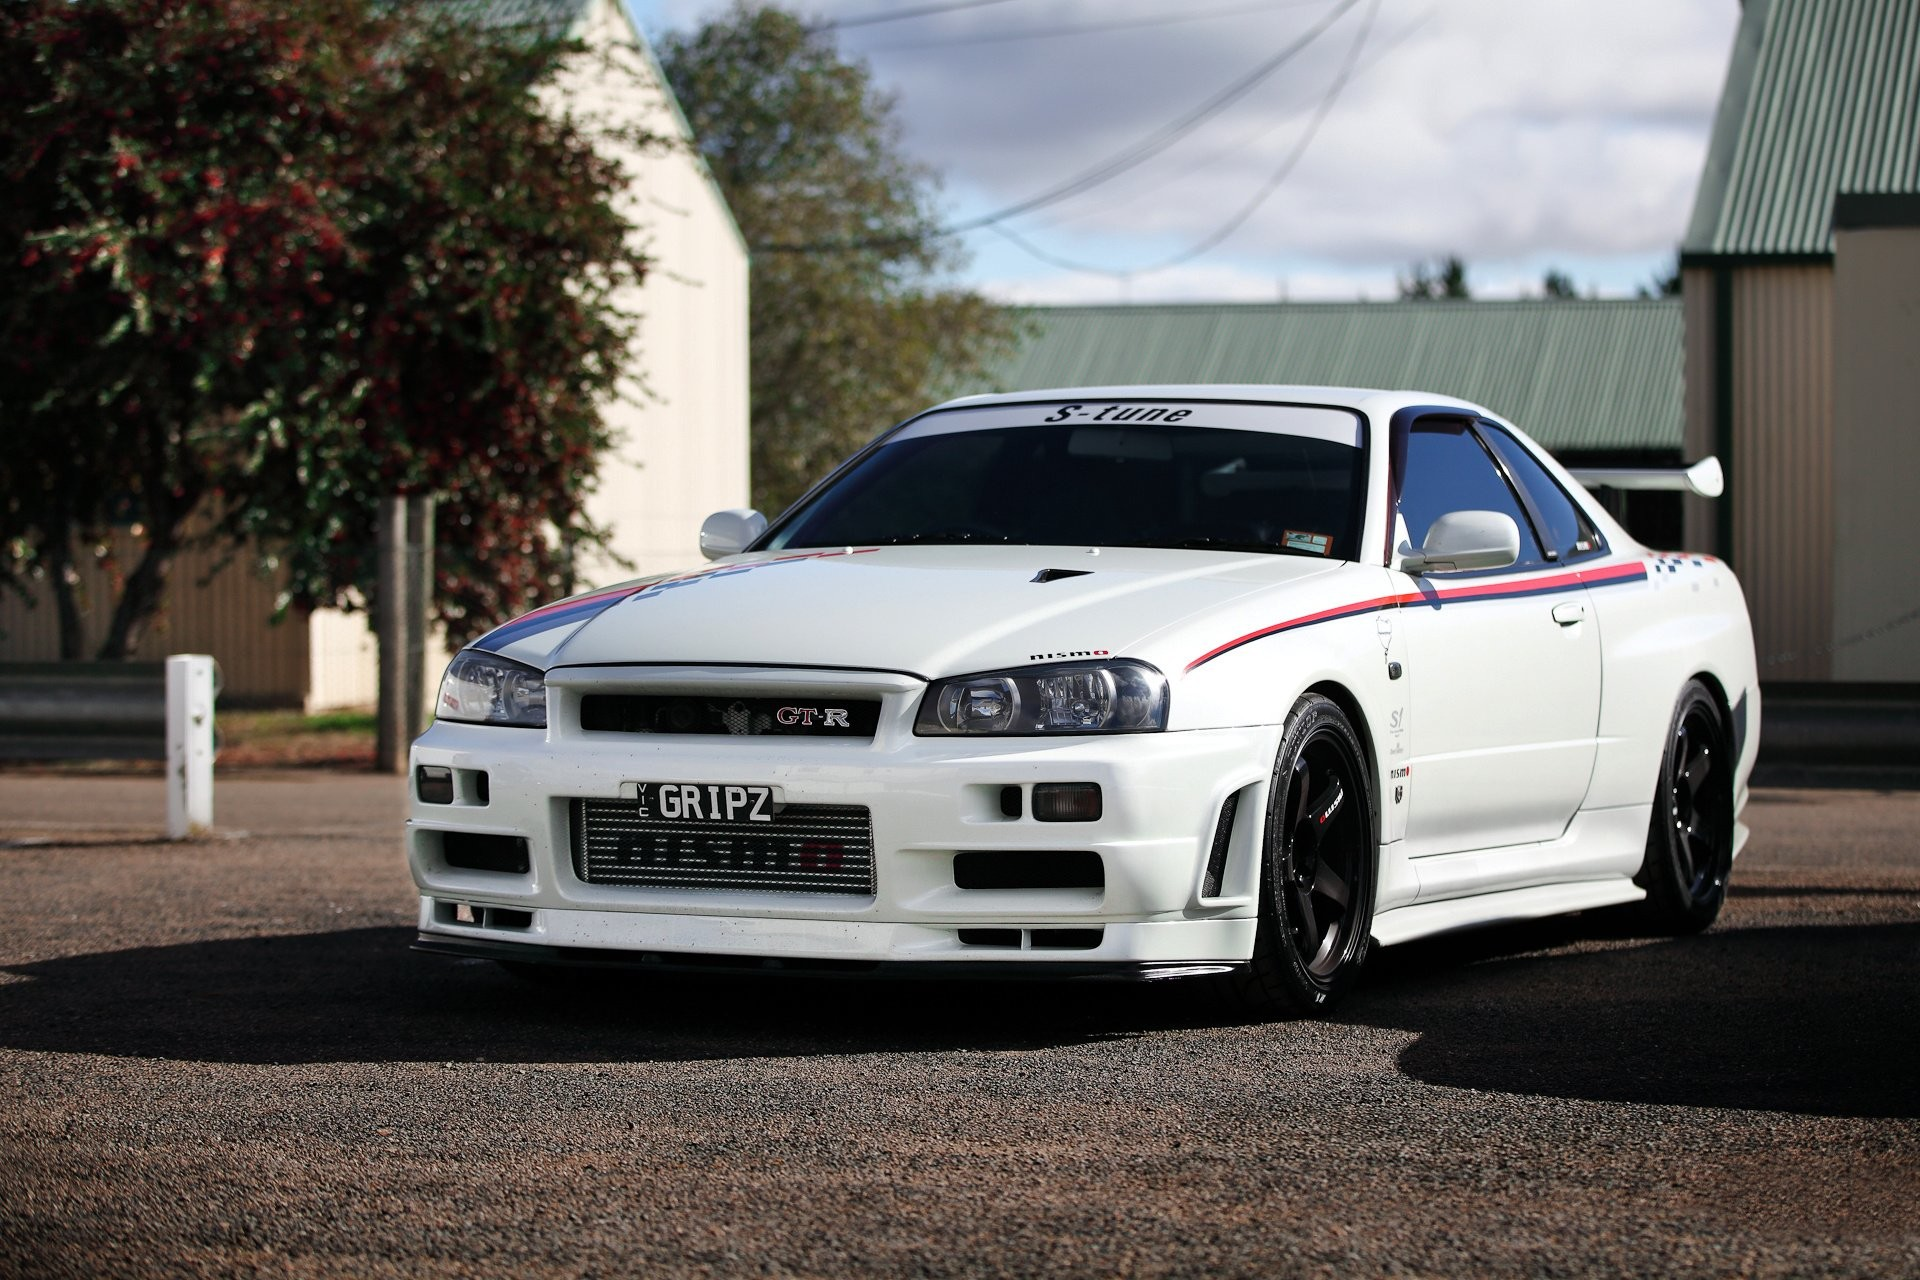 Nissan skyline gtr r car wallpaper Nissan Skyline GTR Wallpapers Wallpapers)